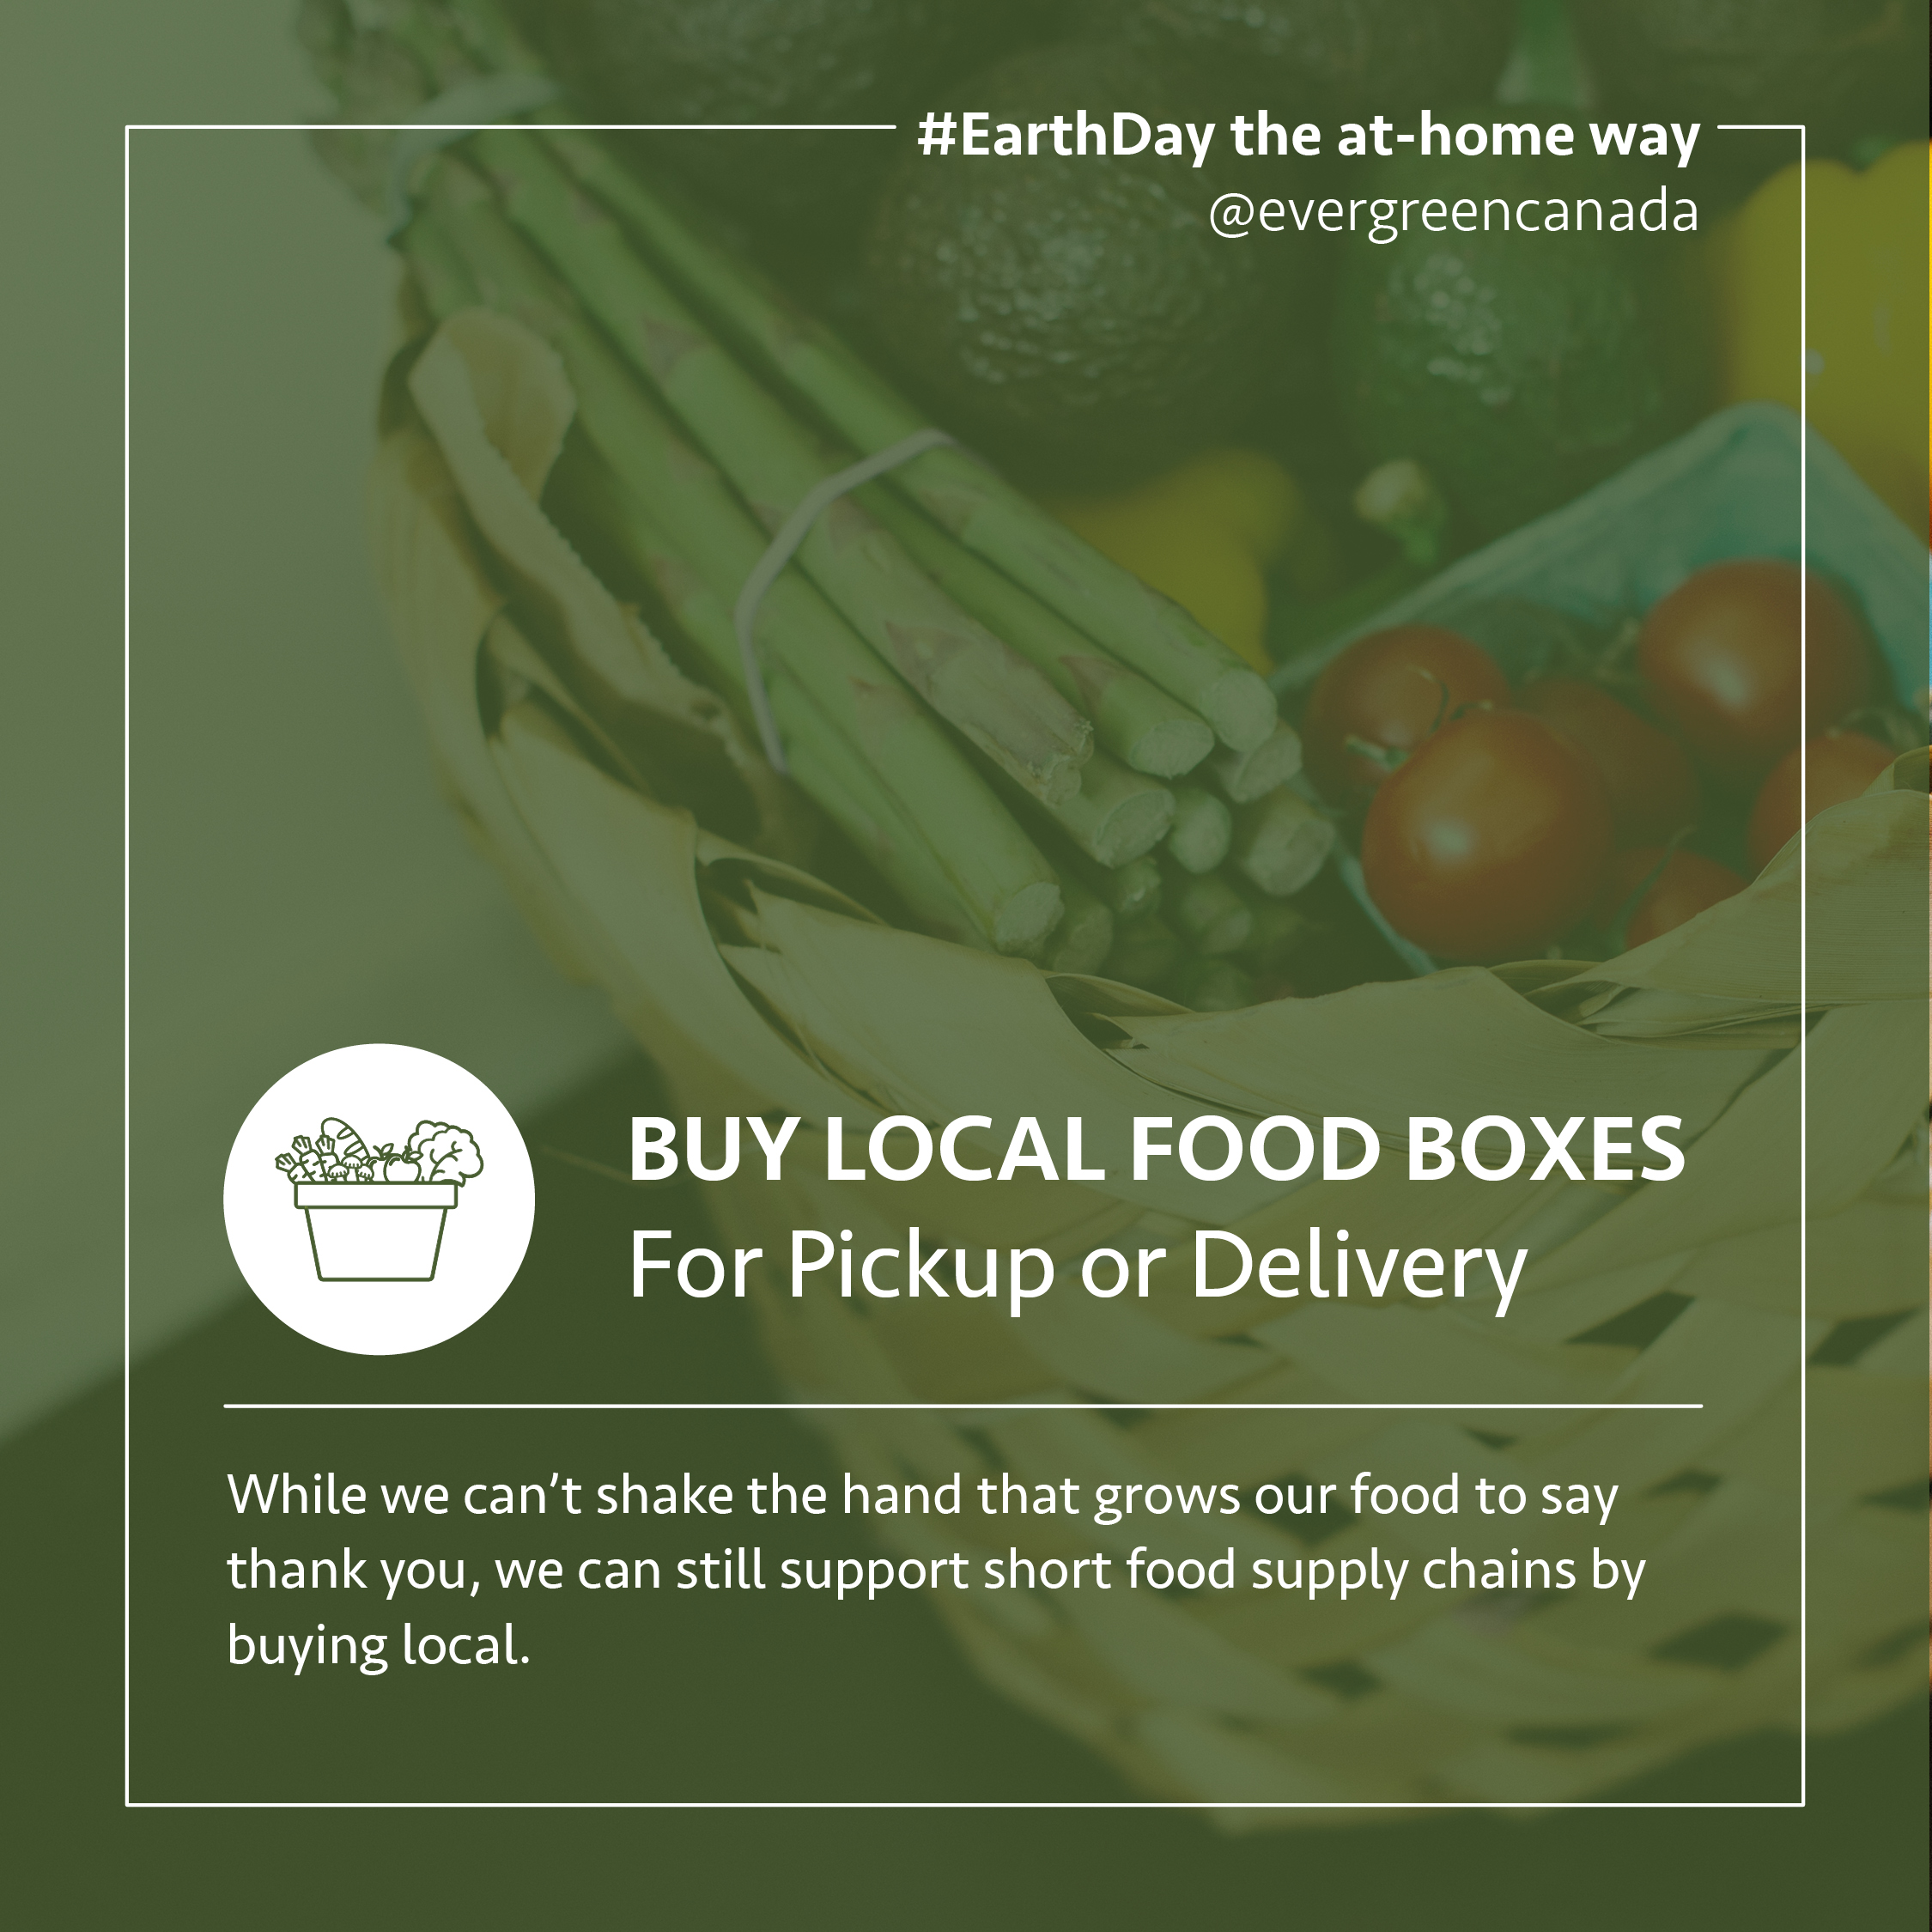 Buy local food boxes for pickup or delivery. While we can't shake the hand that grows our food to say thank you, we can still support short food supply chains by buying local